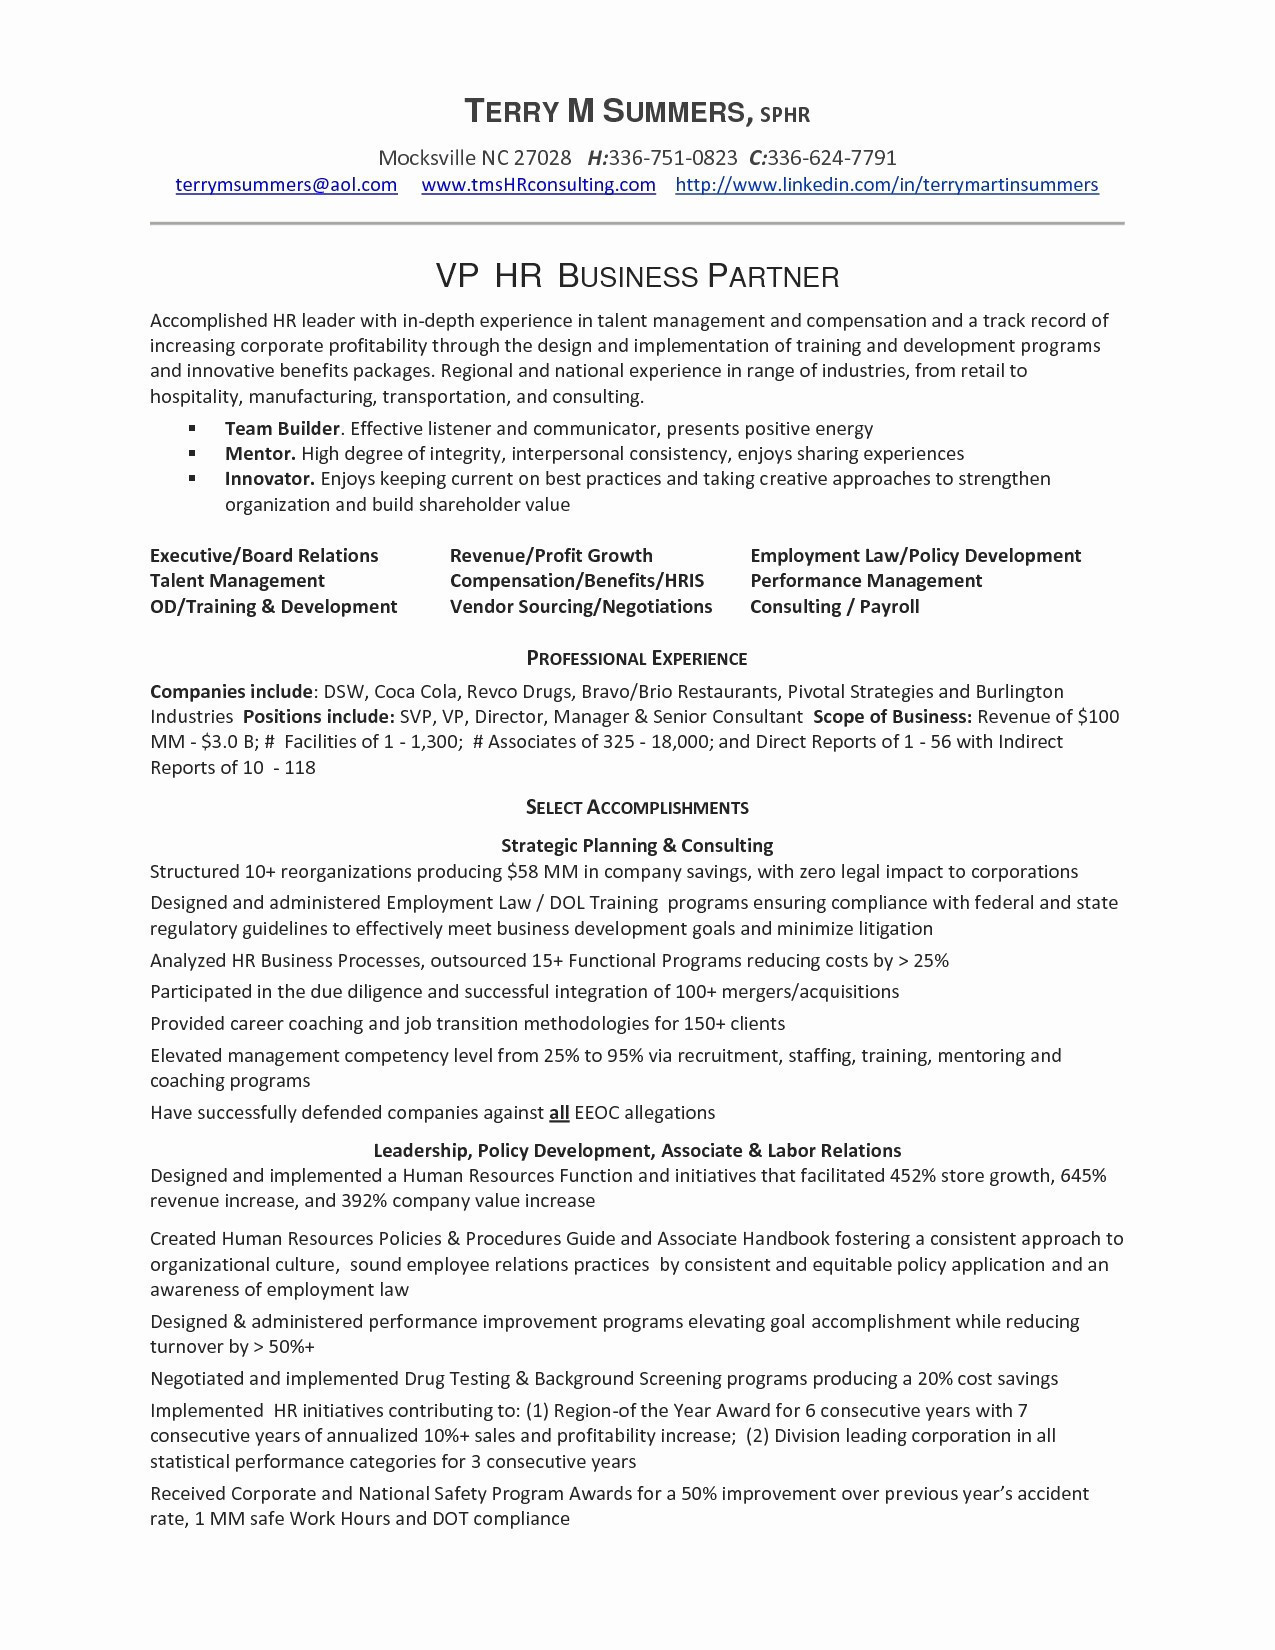 Resume Template Linkedin - Resume Templates for Construction Workers Fresh Construction Worker